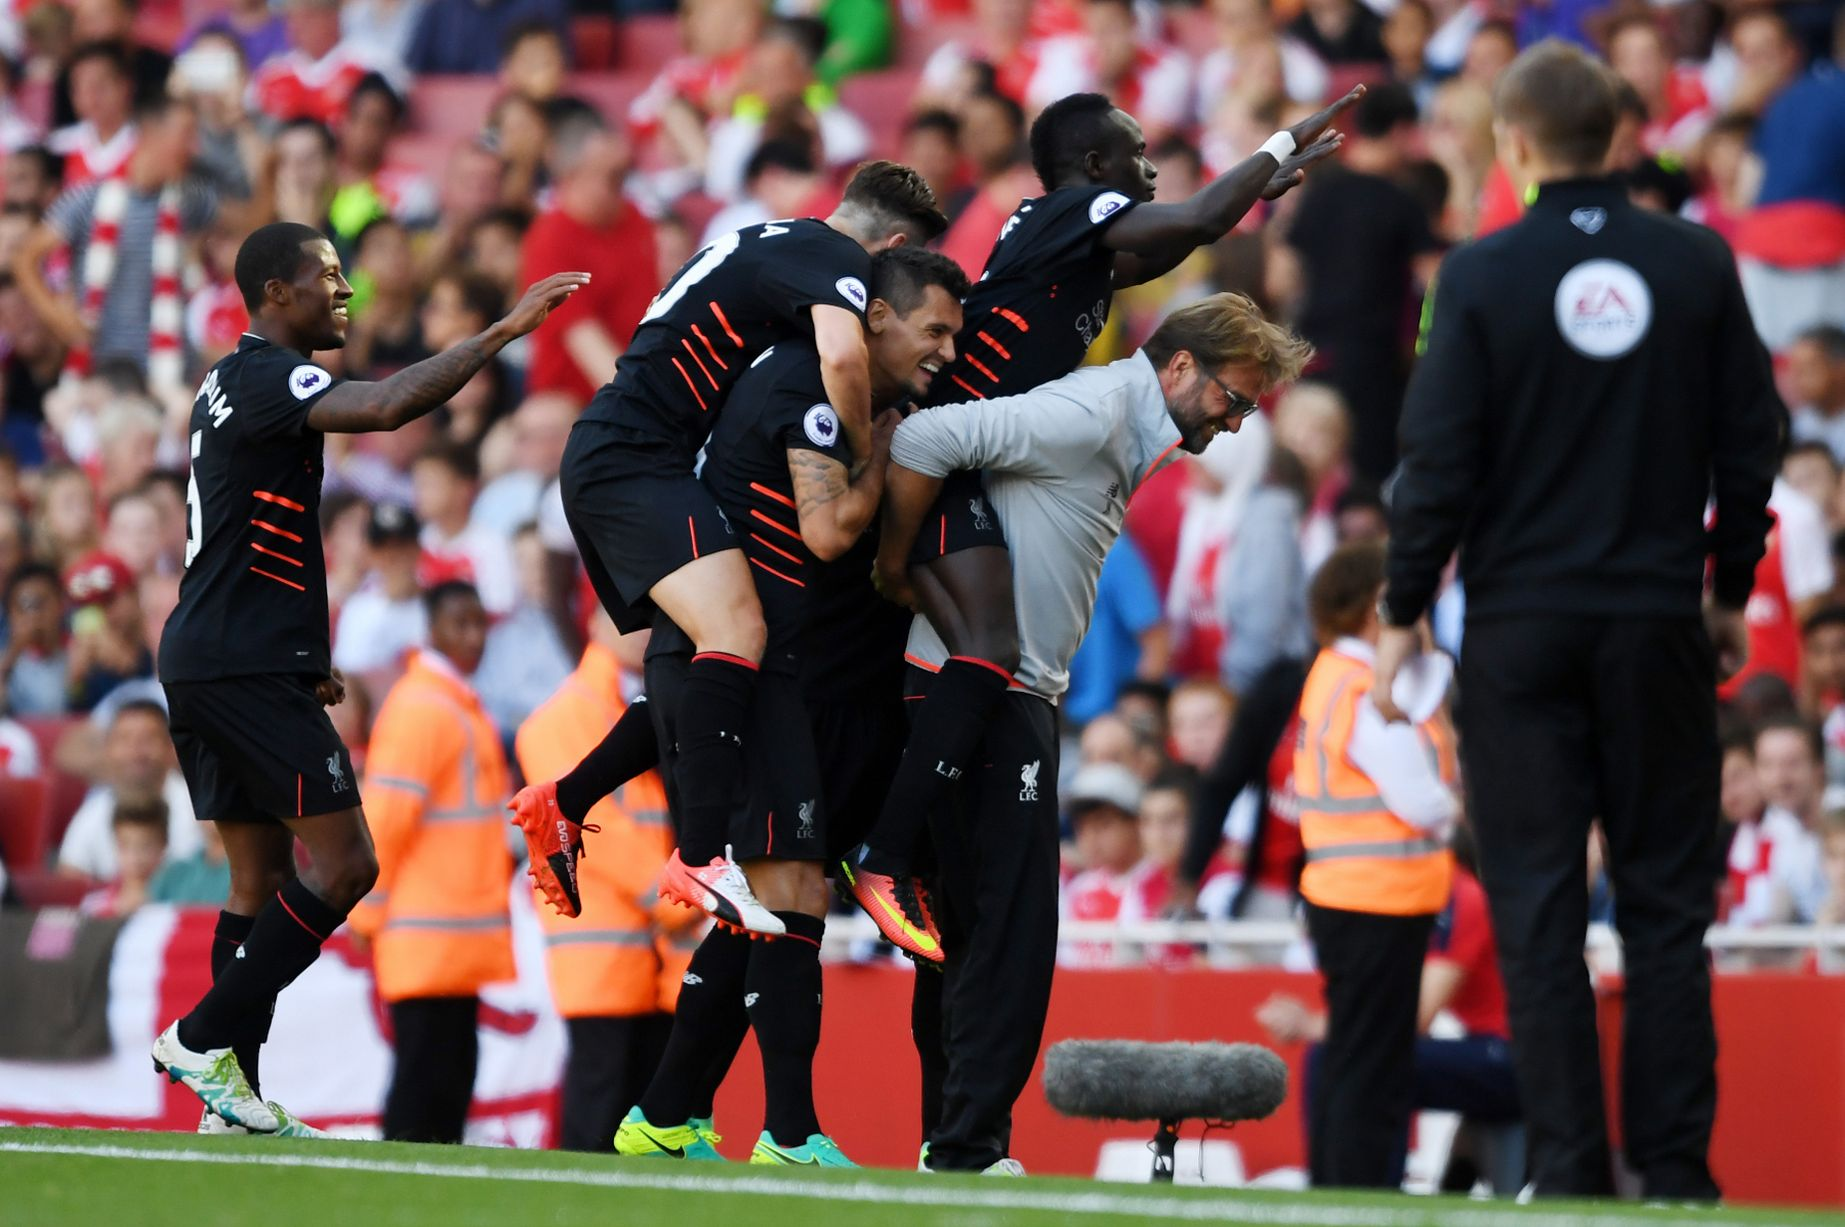 Image result for Jurgen Klopp demands Liverpool players 'move a lot' – Coutinho